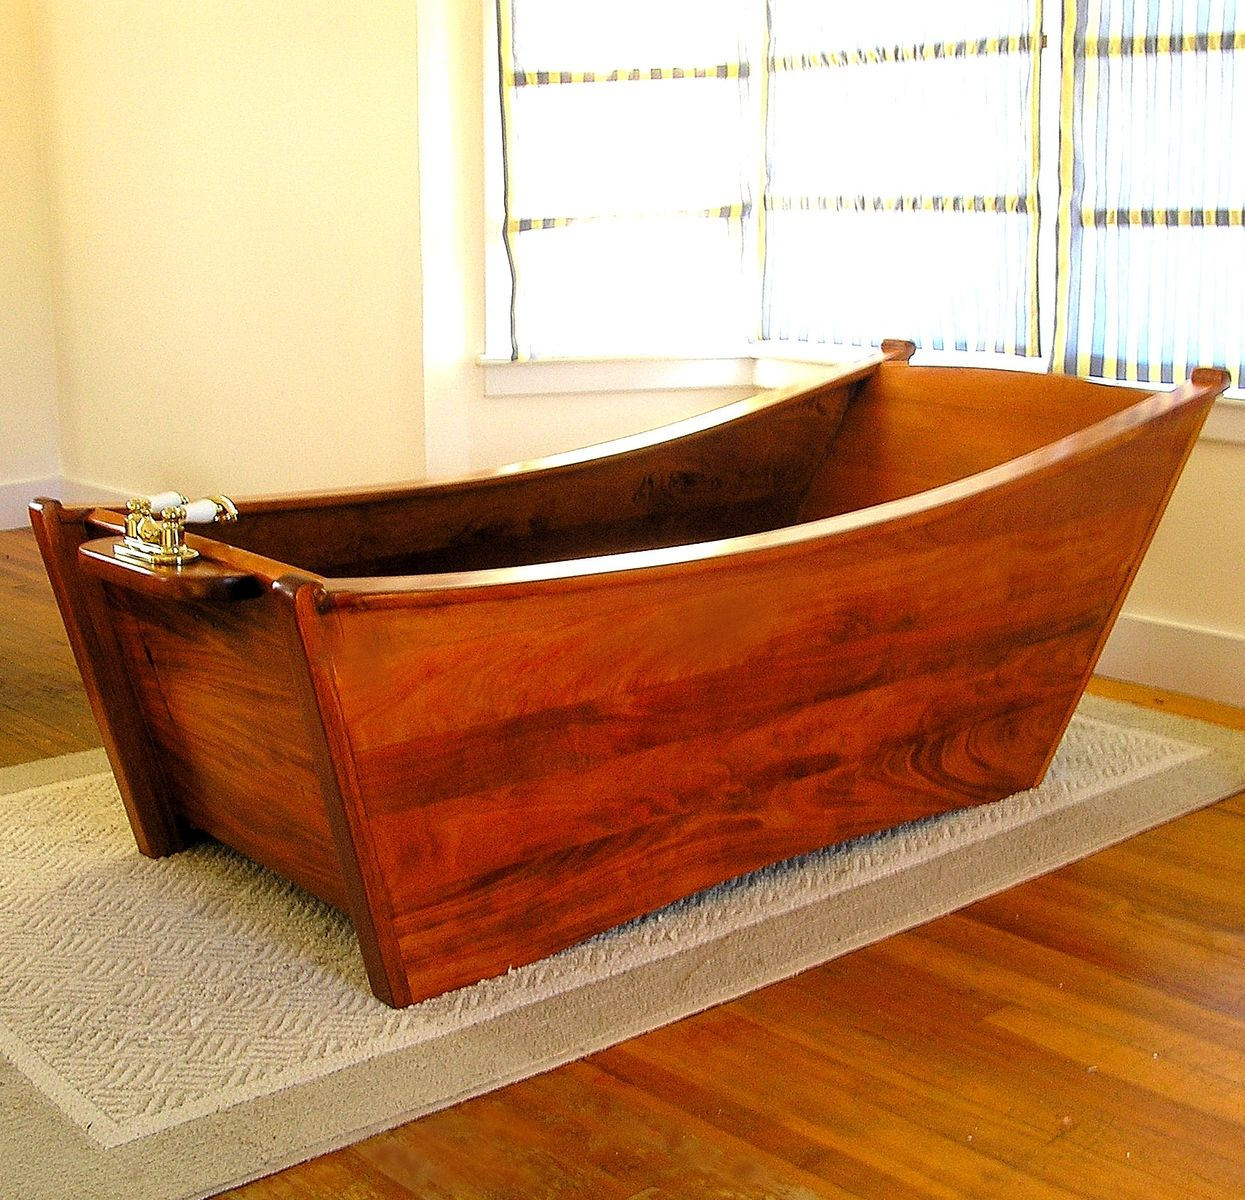 Wooden Bathtub For One Person